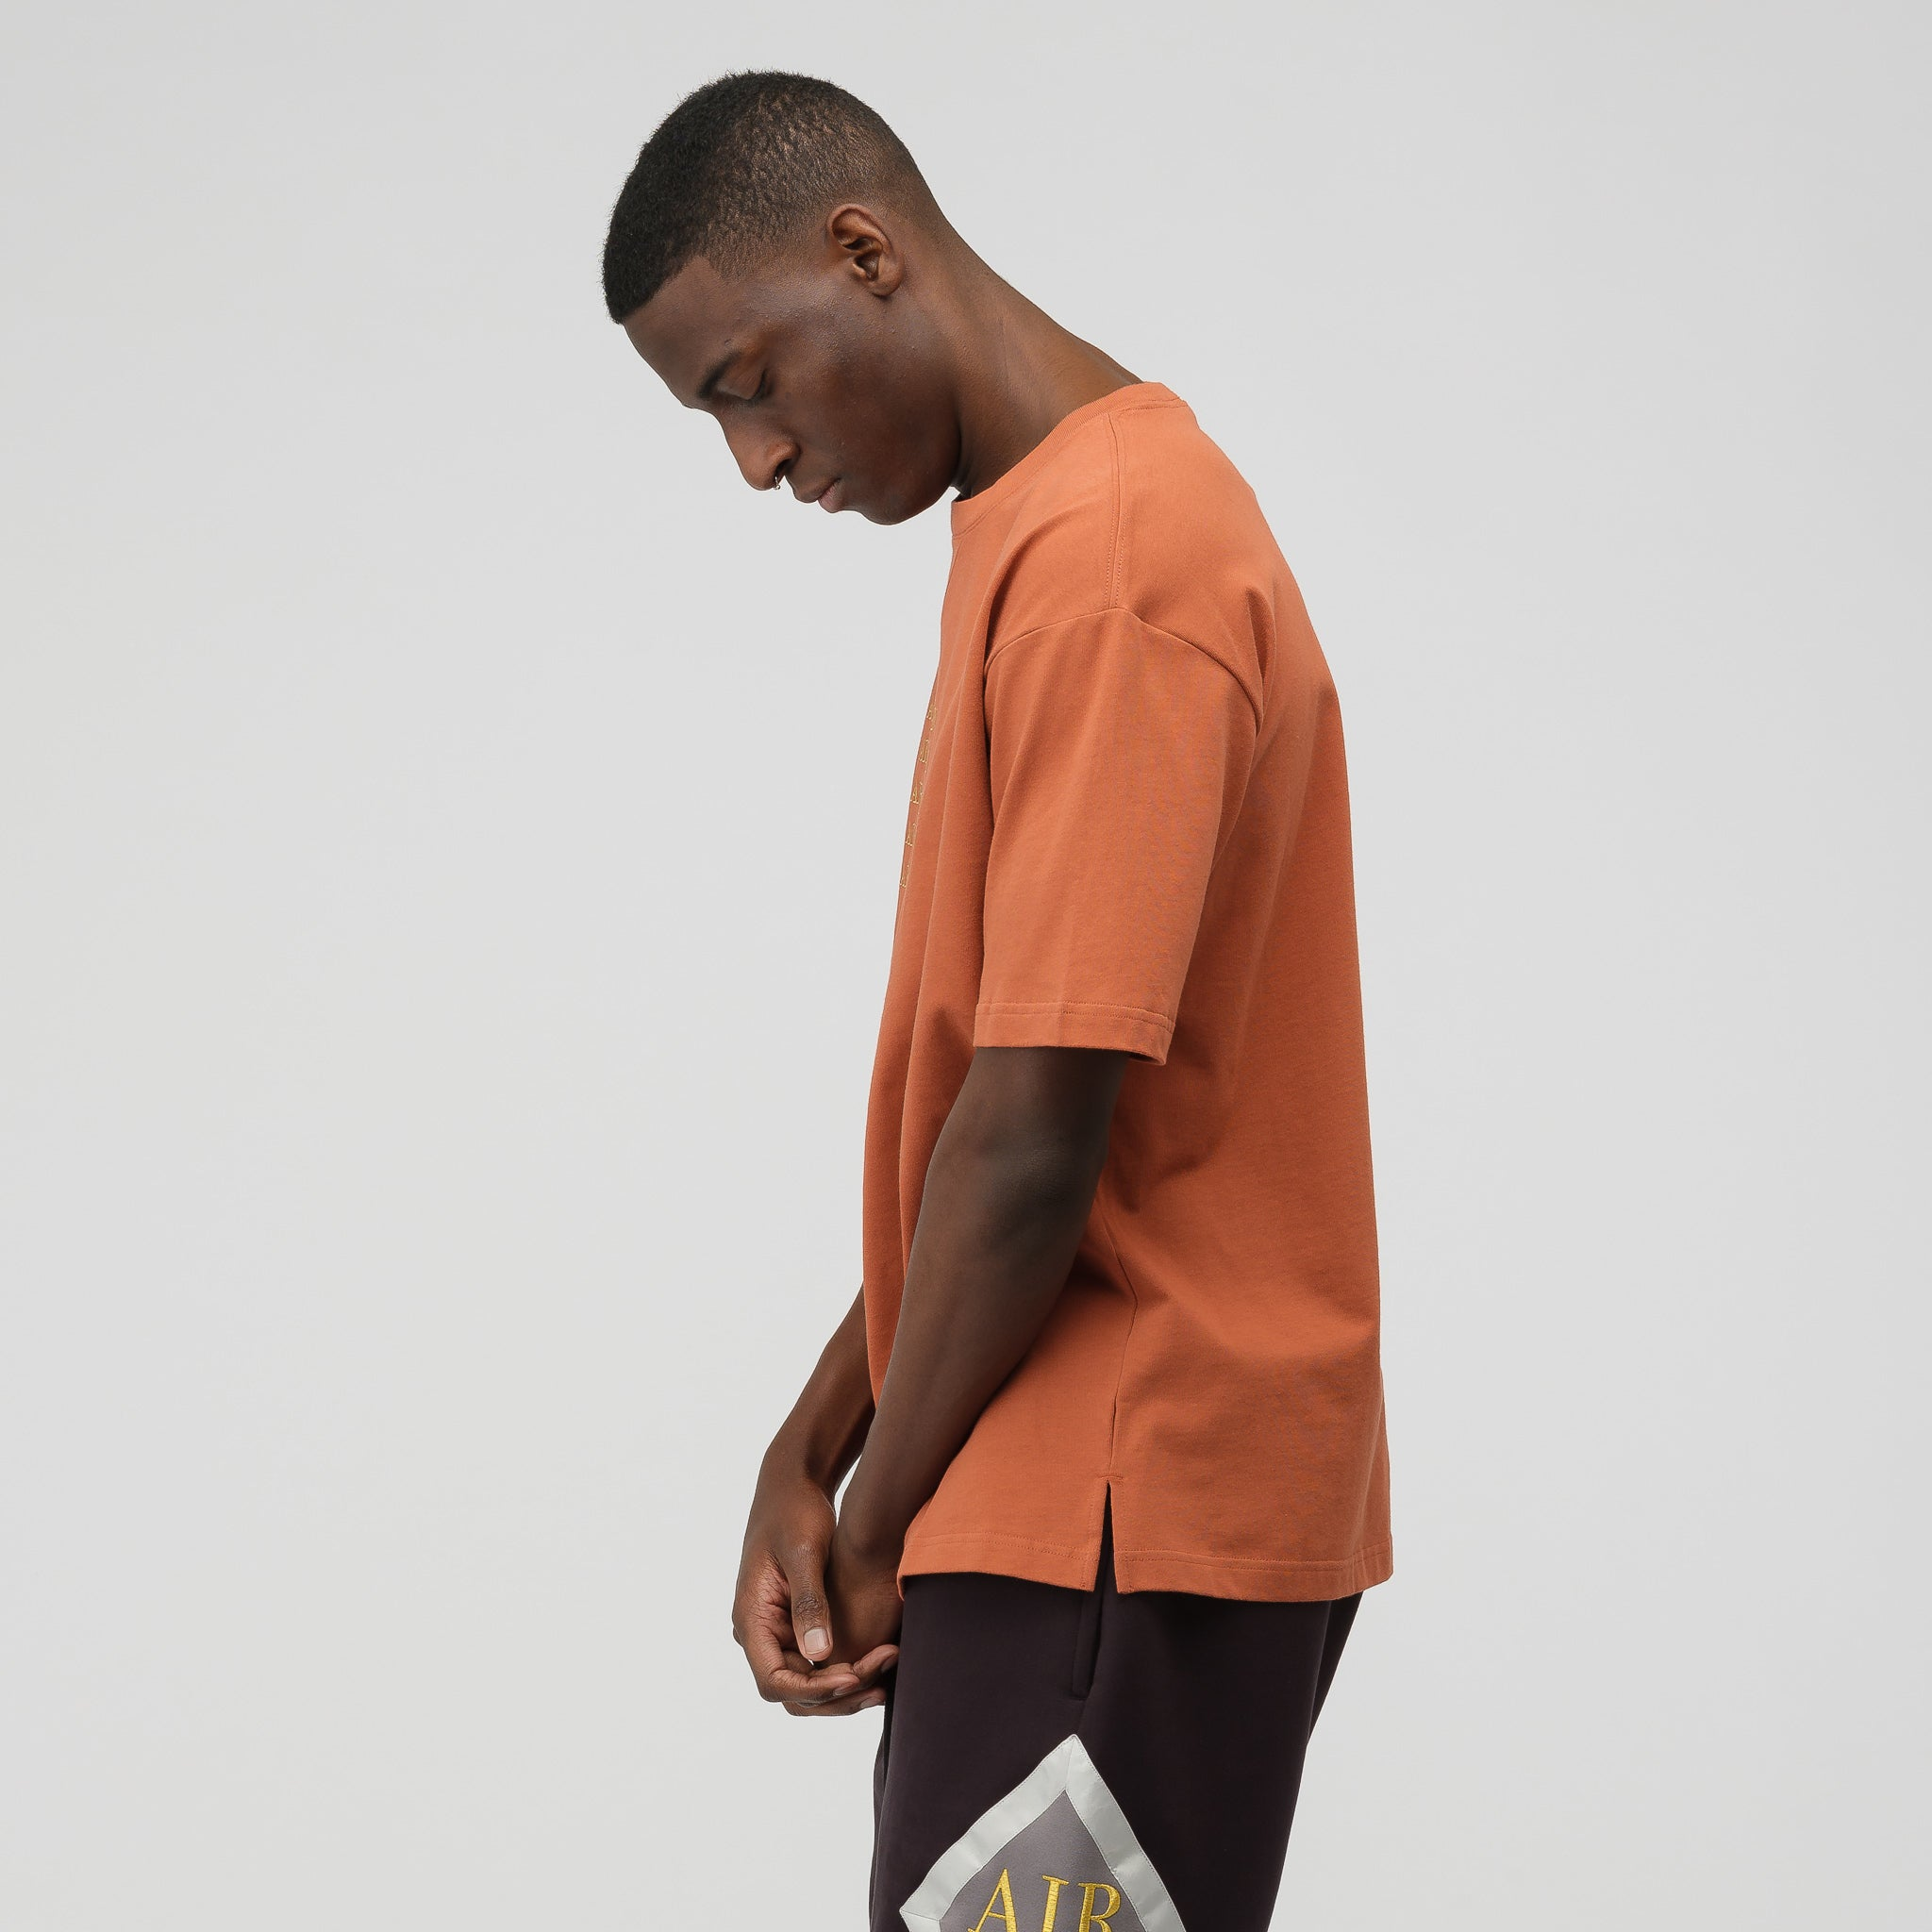 Remastered Crewneck T-Shirt in Dusty Peach